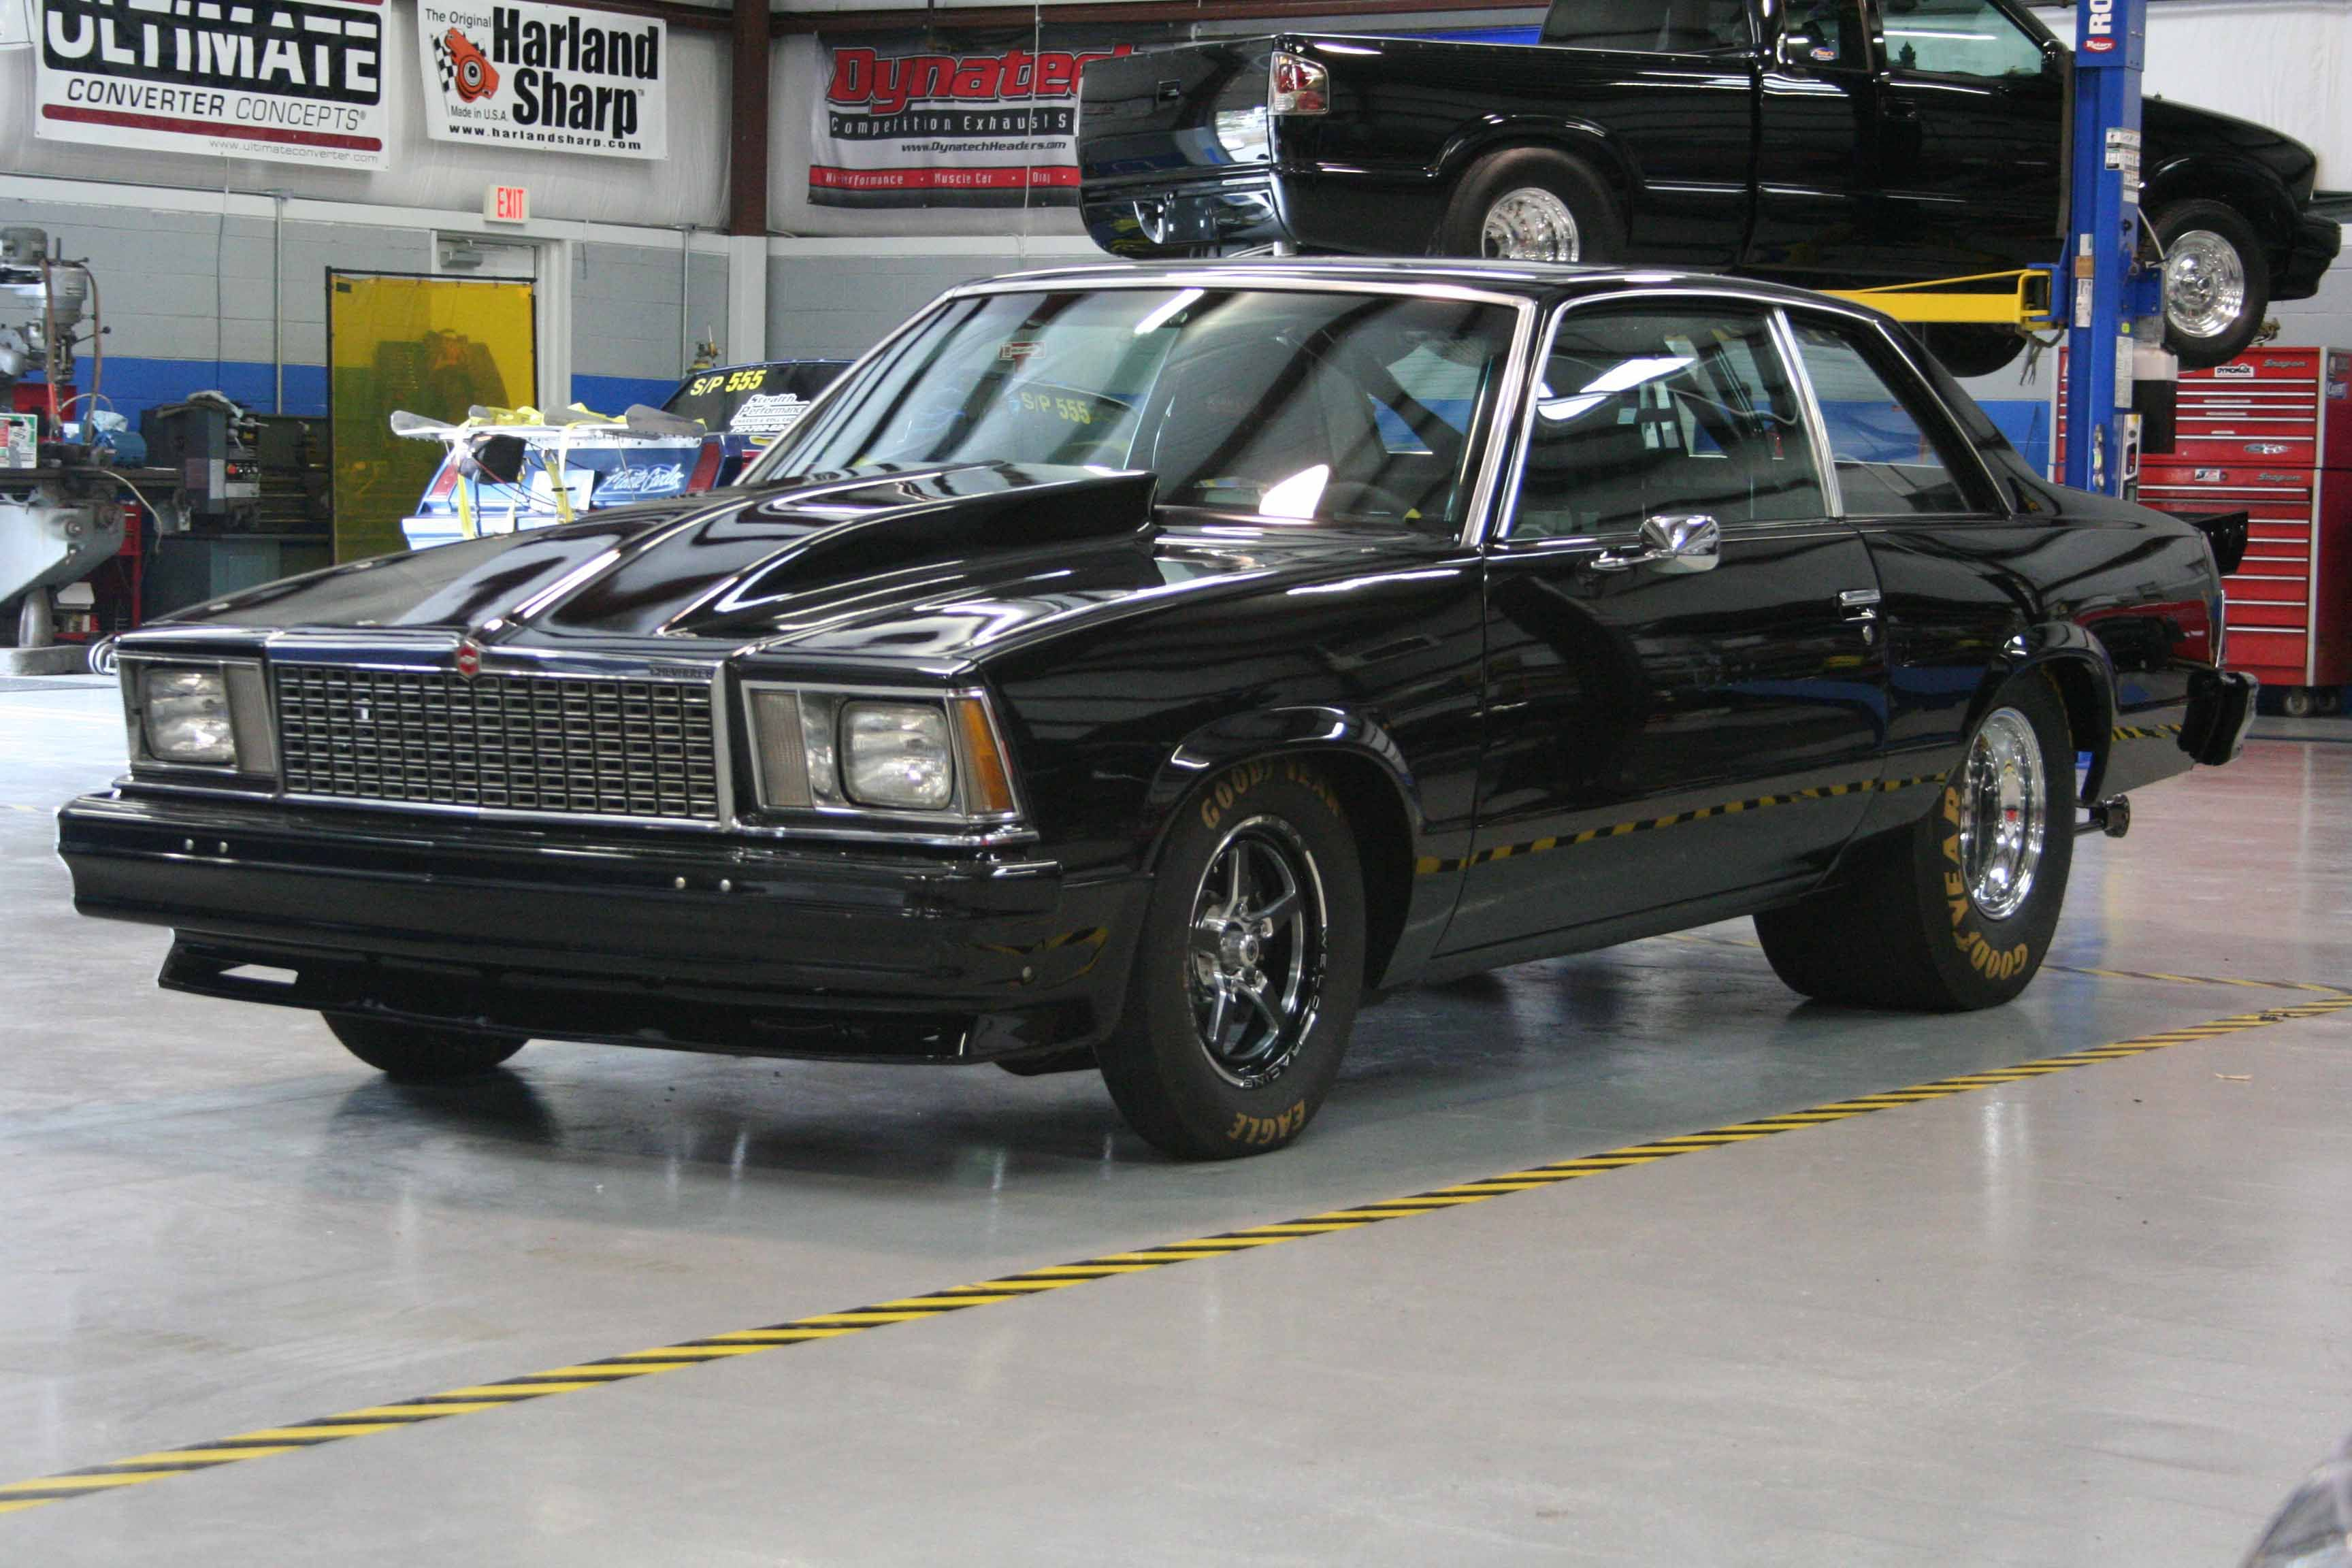 78 Malibu. These things look like great white sharks to me. Great ...